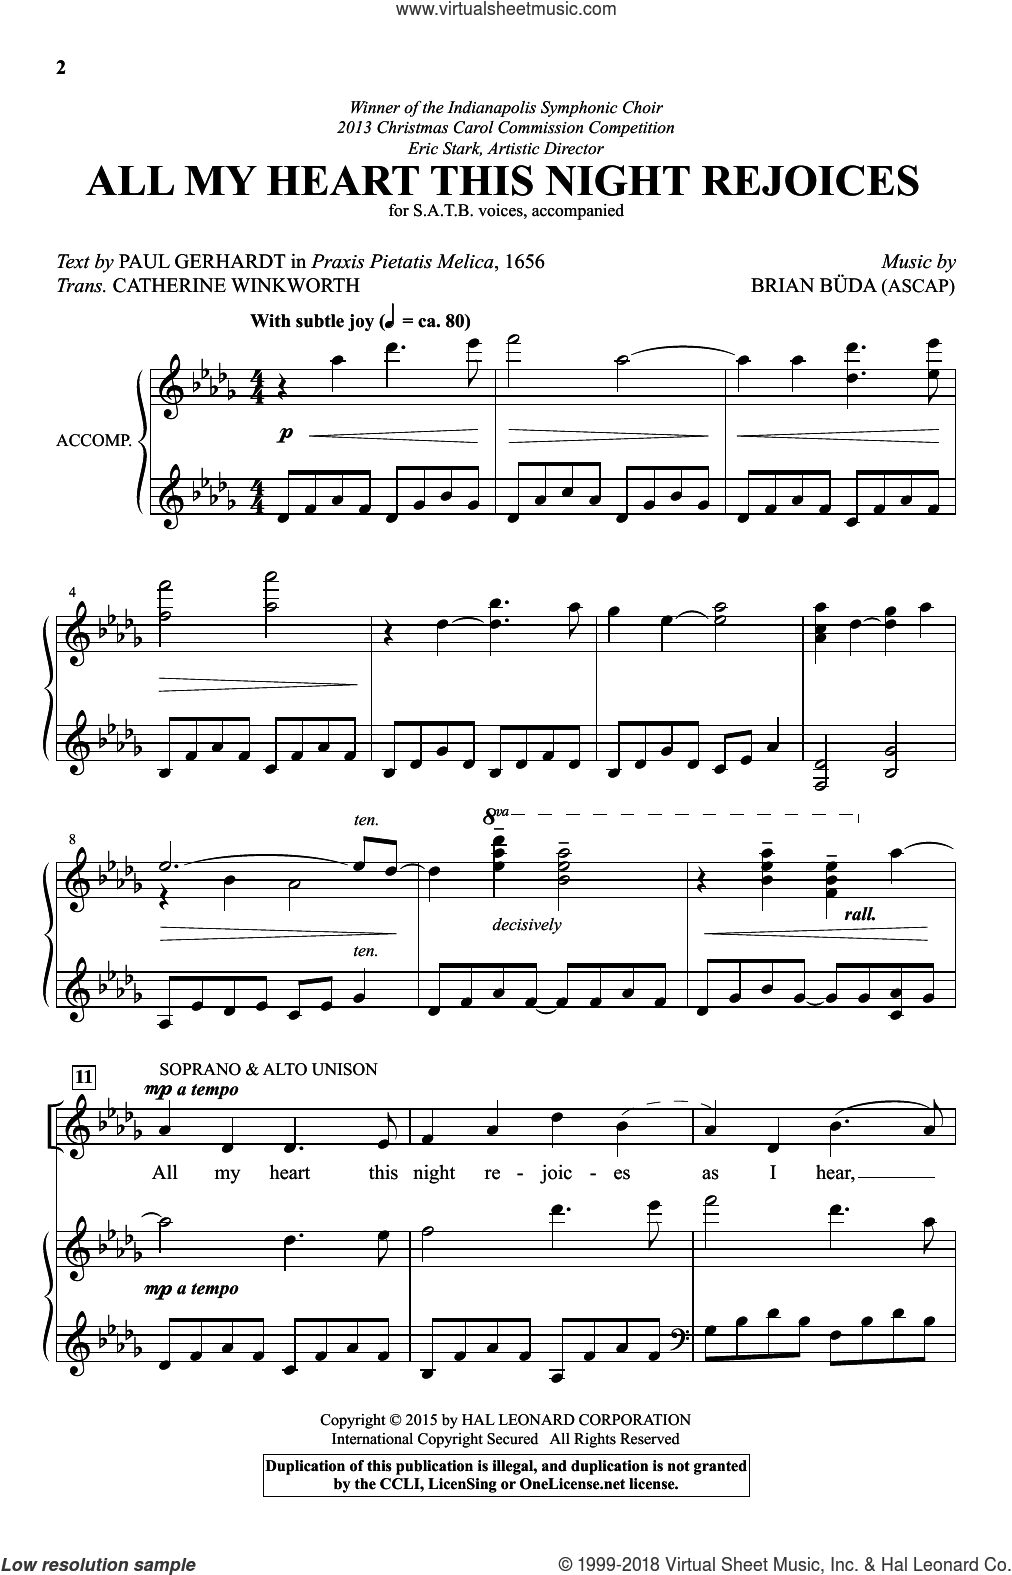 All My Heart This Night Rejoices sheet music for choir and piano (SATB) by Catherine Winkworth (trans.), Brian Buda and Paul Gerhardt. Score Image Preview.